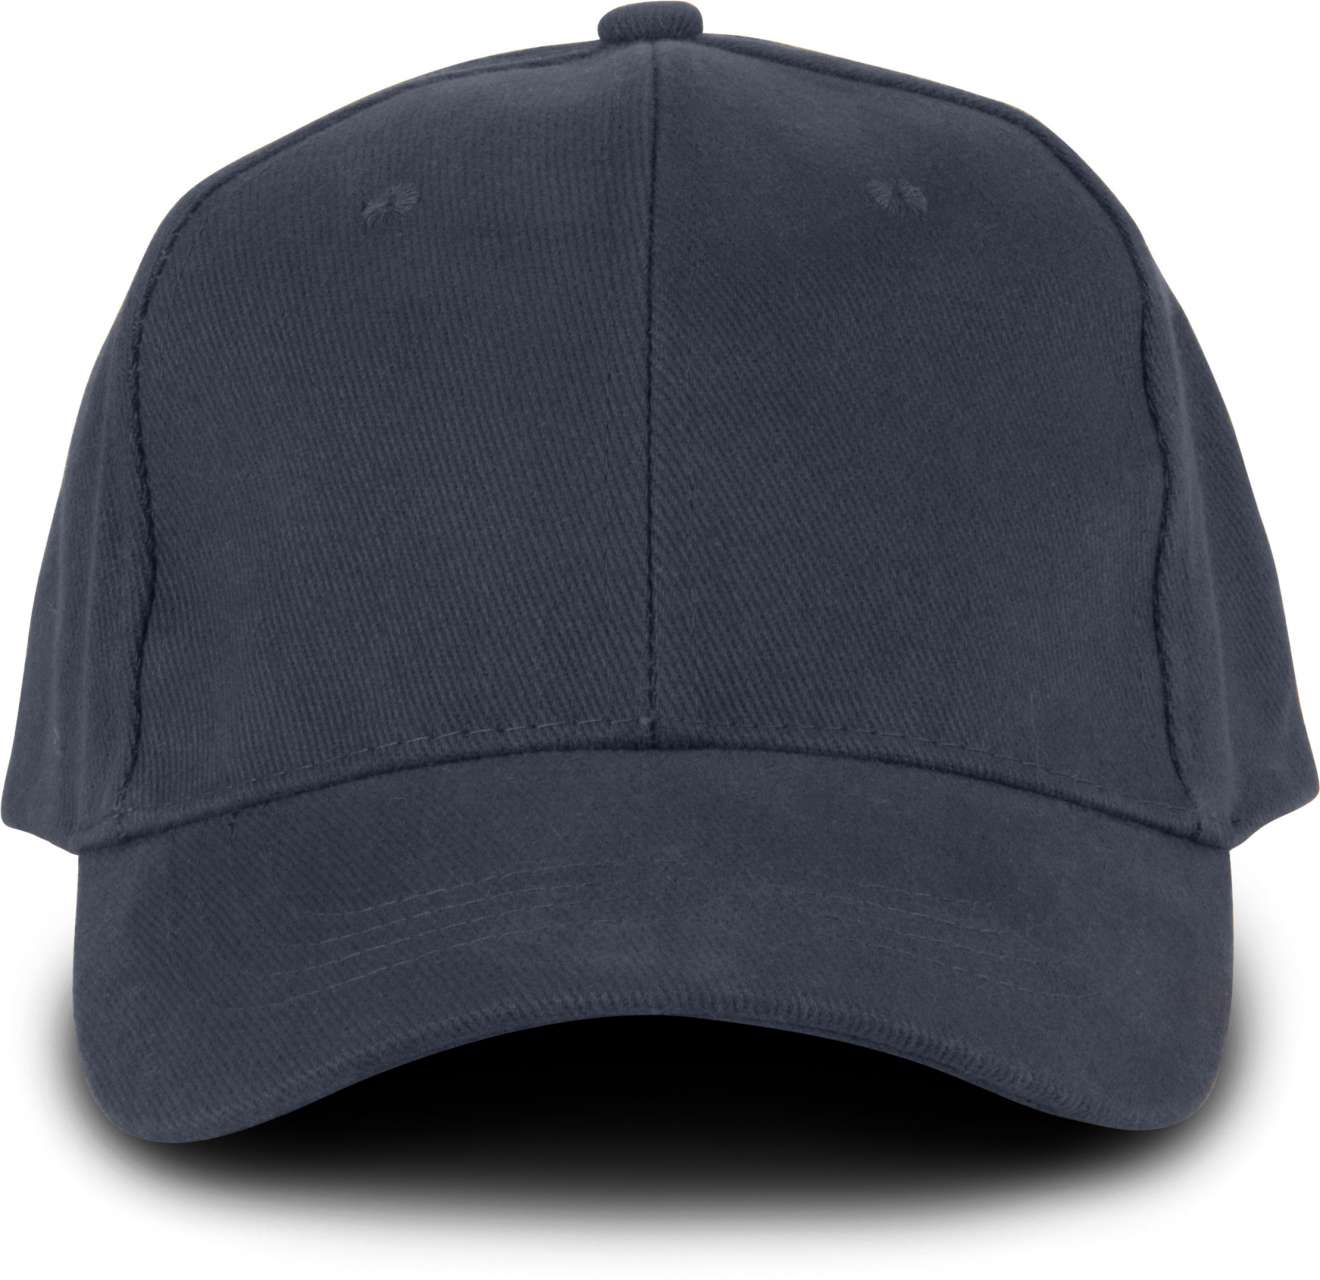 OKEOTEX CERTIFIED 350GSM 6 PANEL CAP